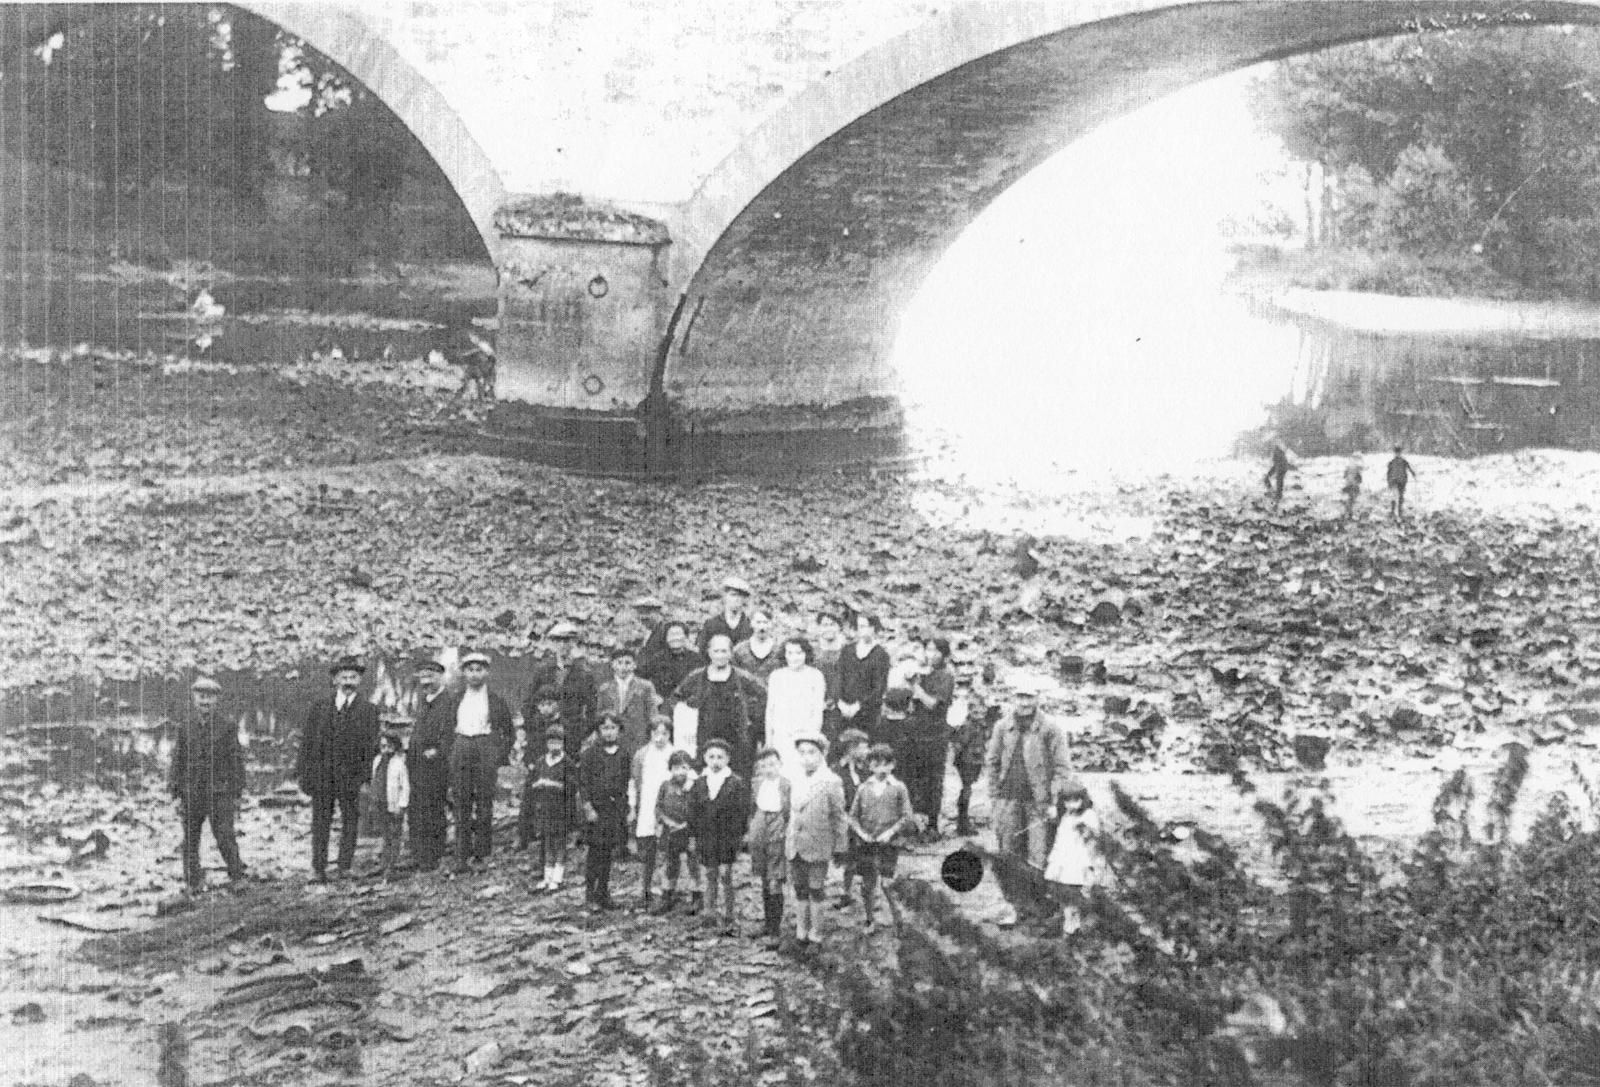 Le niveau réel des eaux devant Pont-de-l'Arche sans retenue en aval et suite aux dragages du lit de la Seine. Ici le 16 février 1929 des Archépontains posent sur le lit sec suite à la rupture accidentelle du barrage de Martot (photographie de Joseph Du Buisson ou bien de sa collection personnelle).